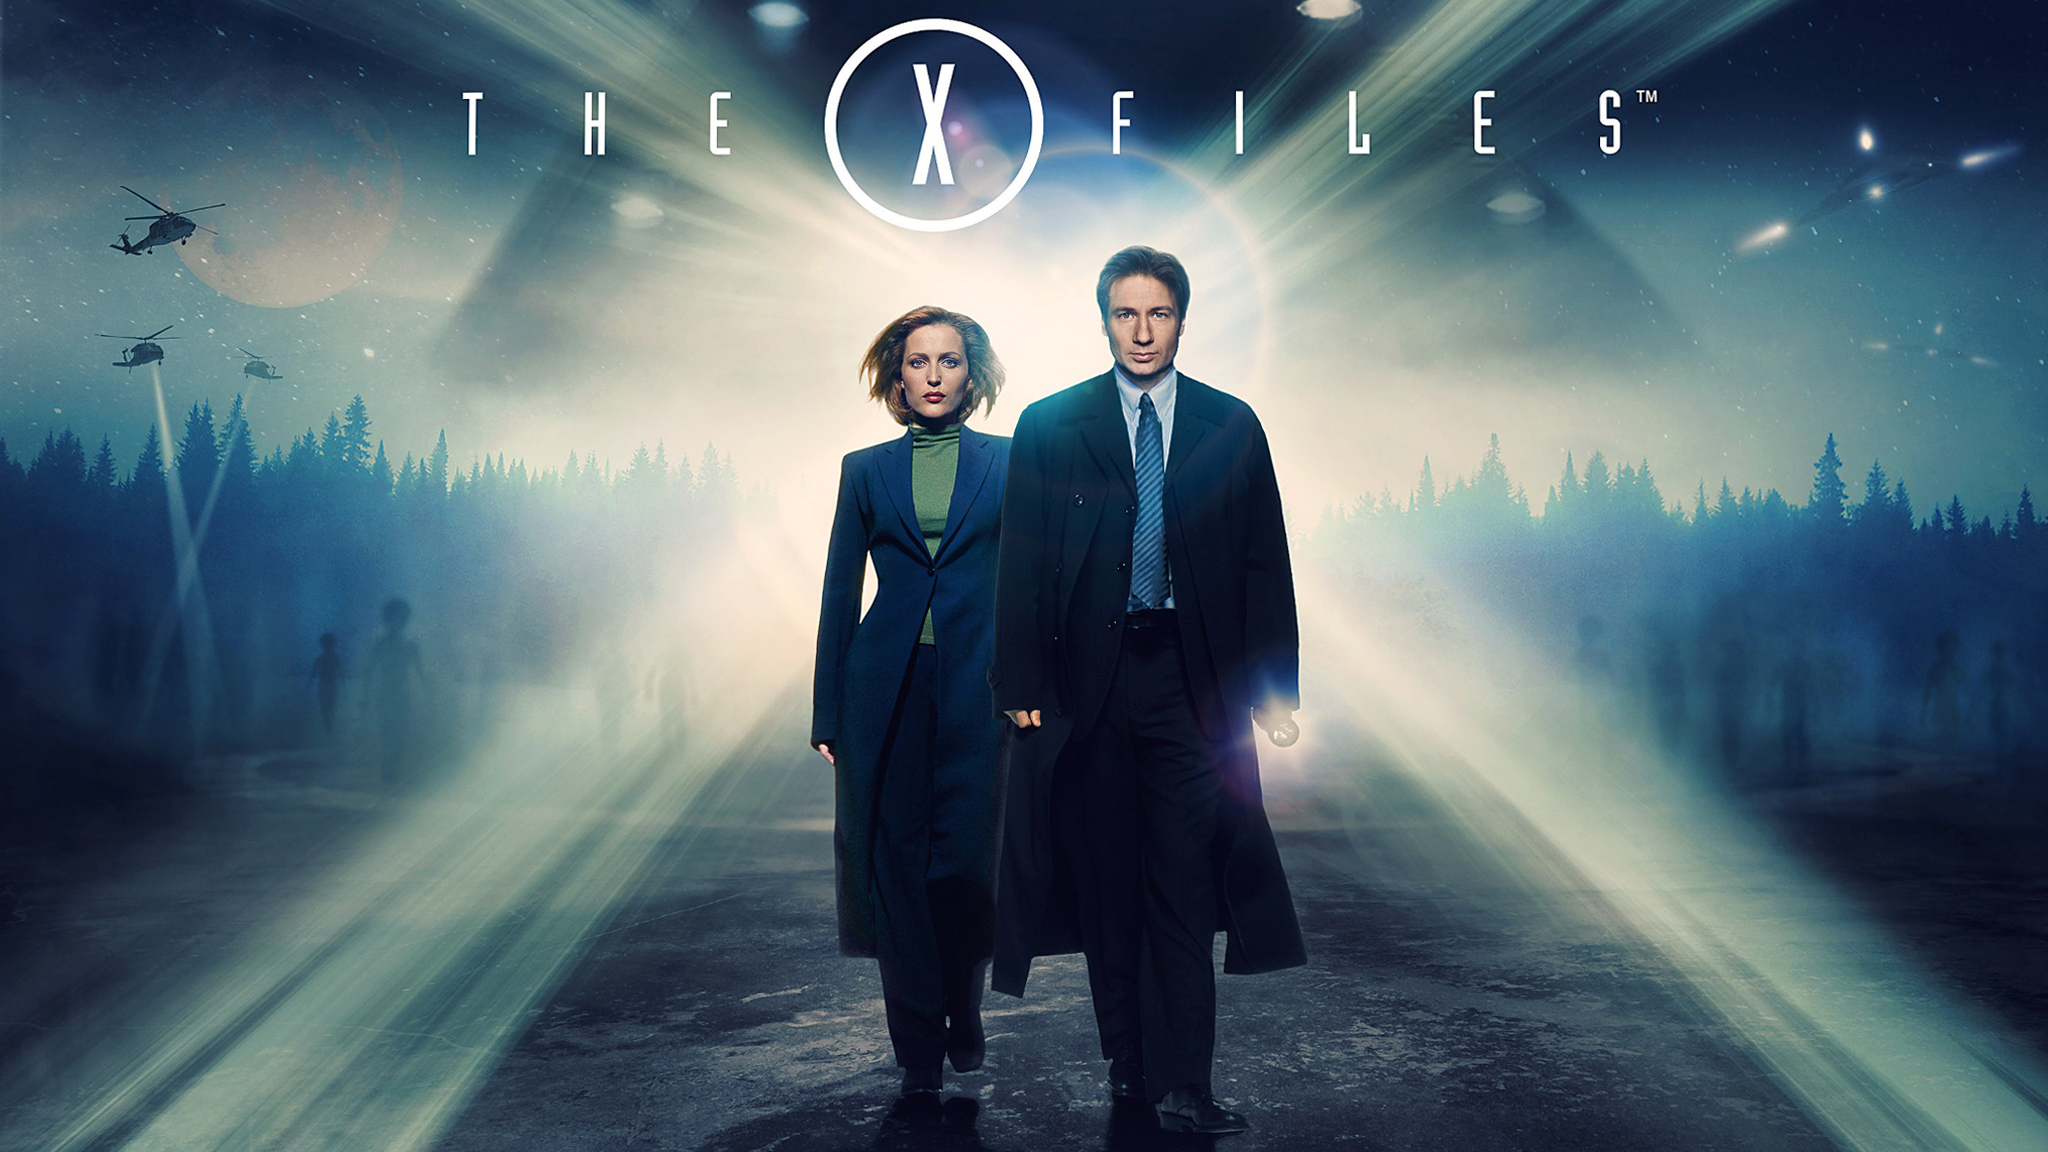 The X Files TV Show image